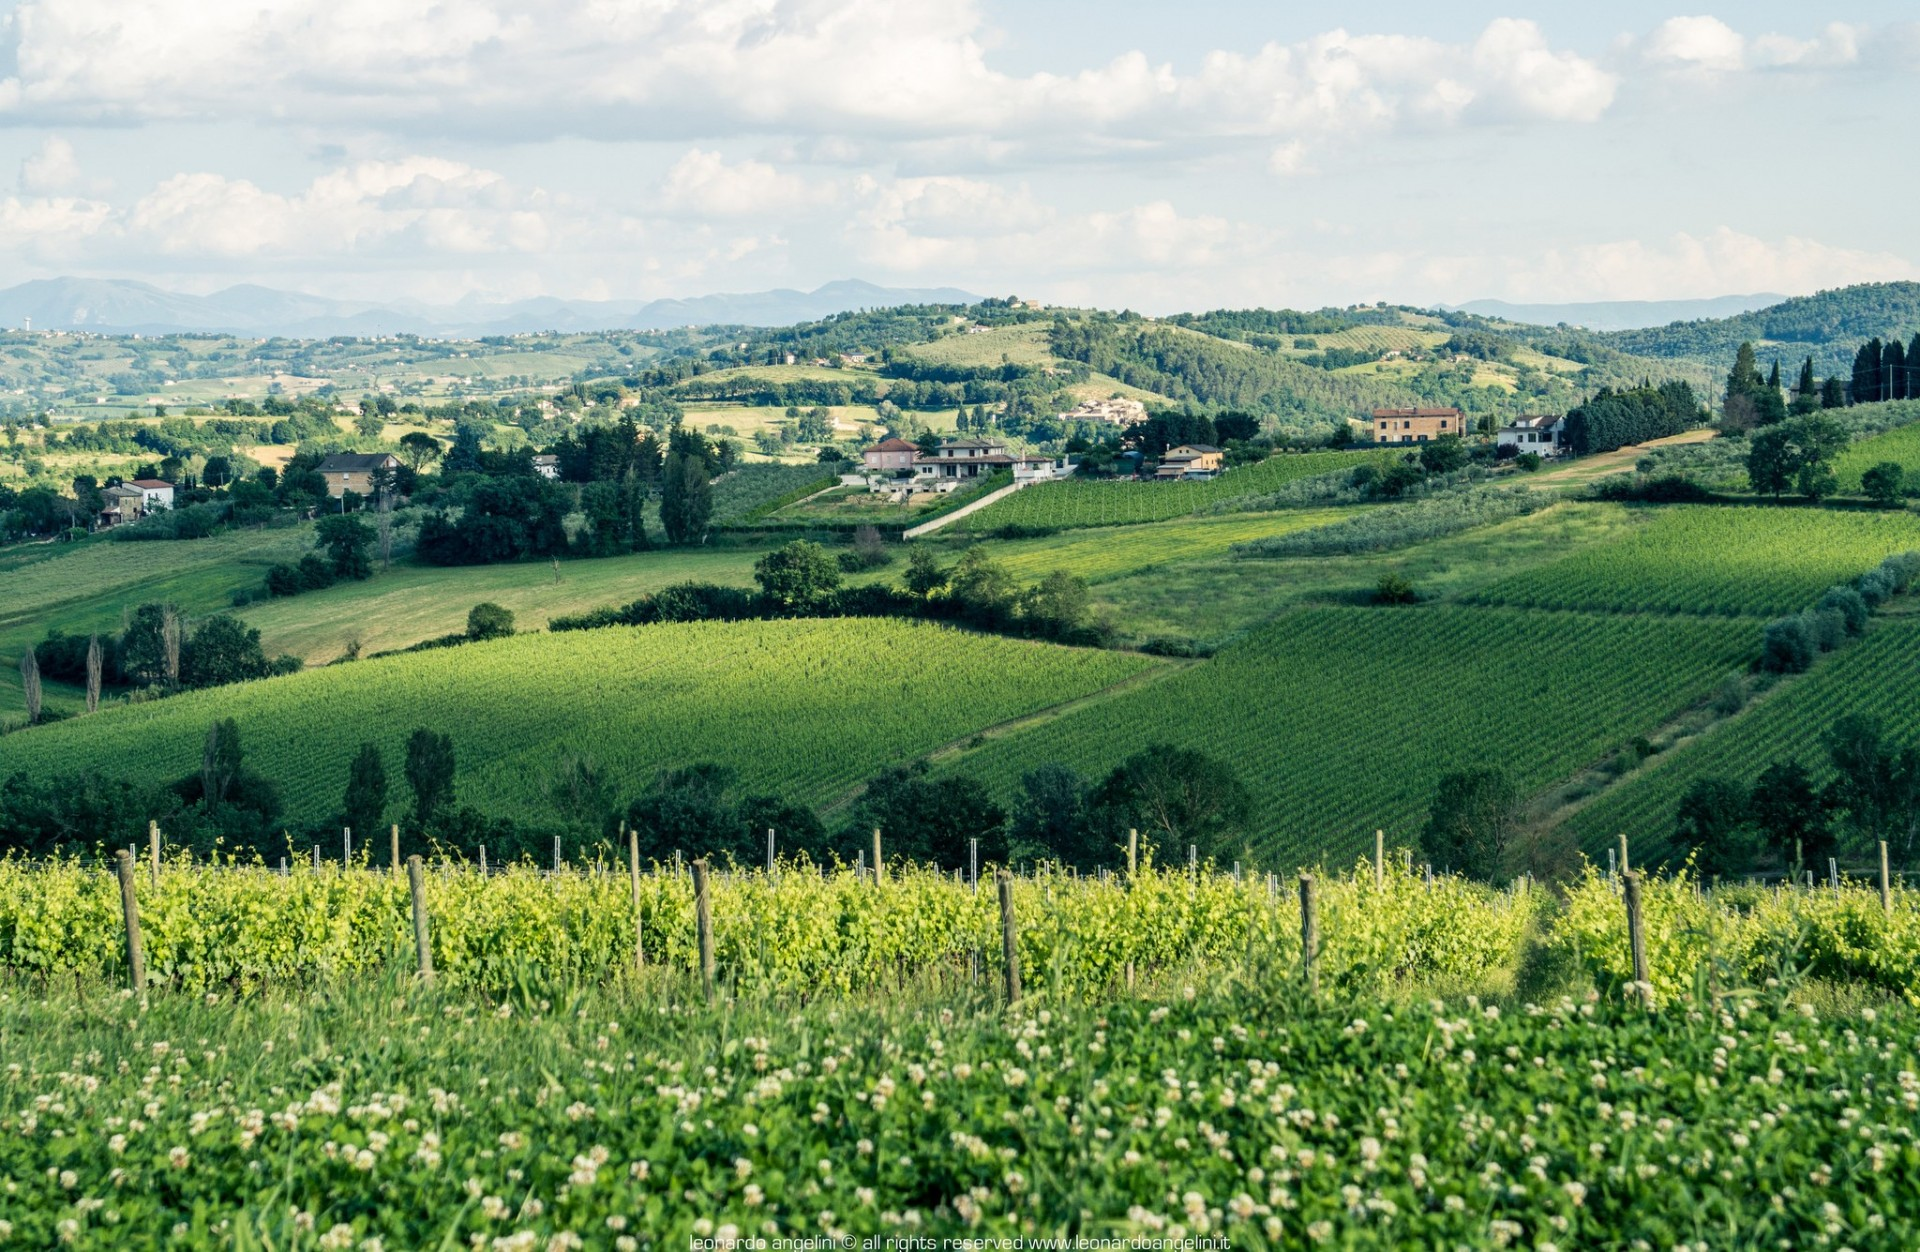 Montefalco, The king of Sagrantino